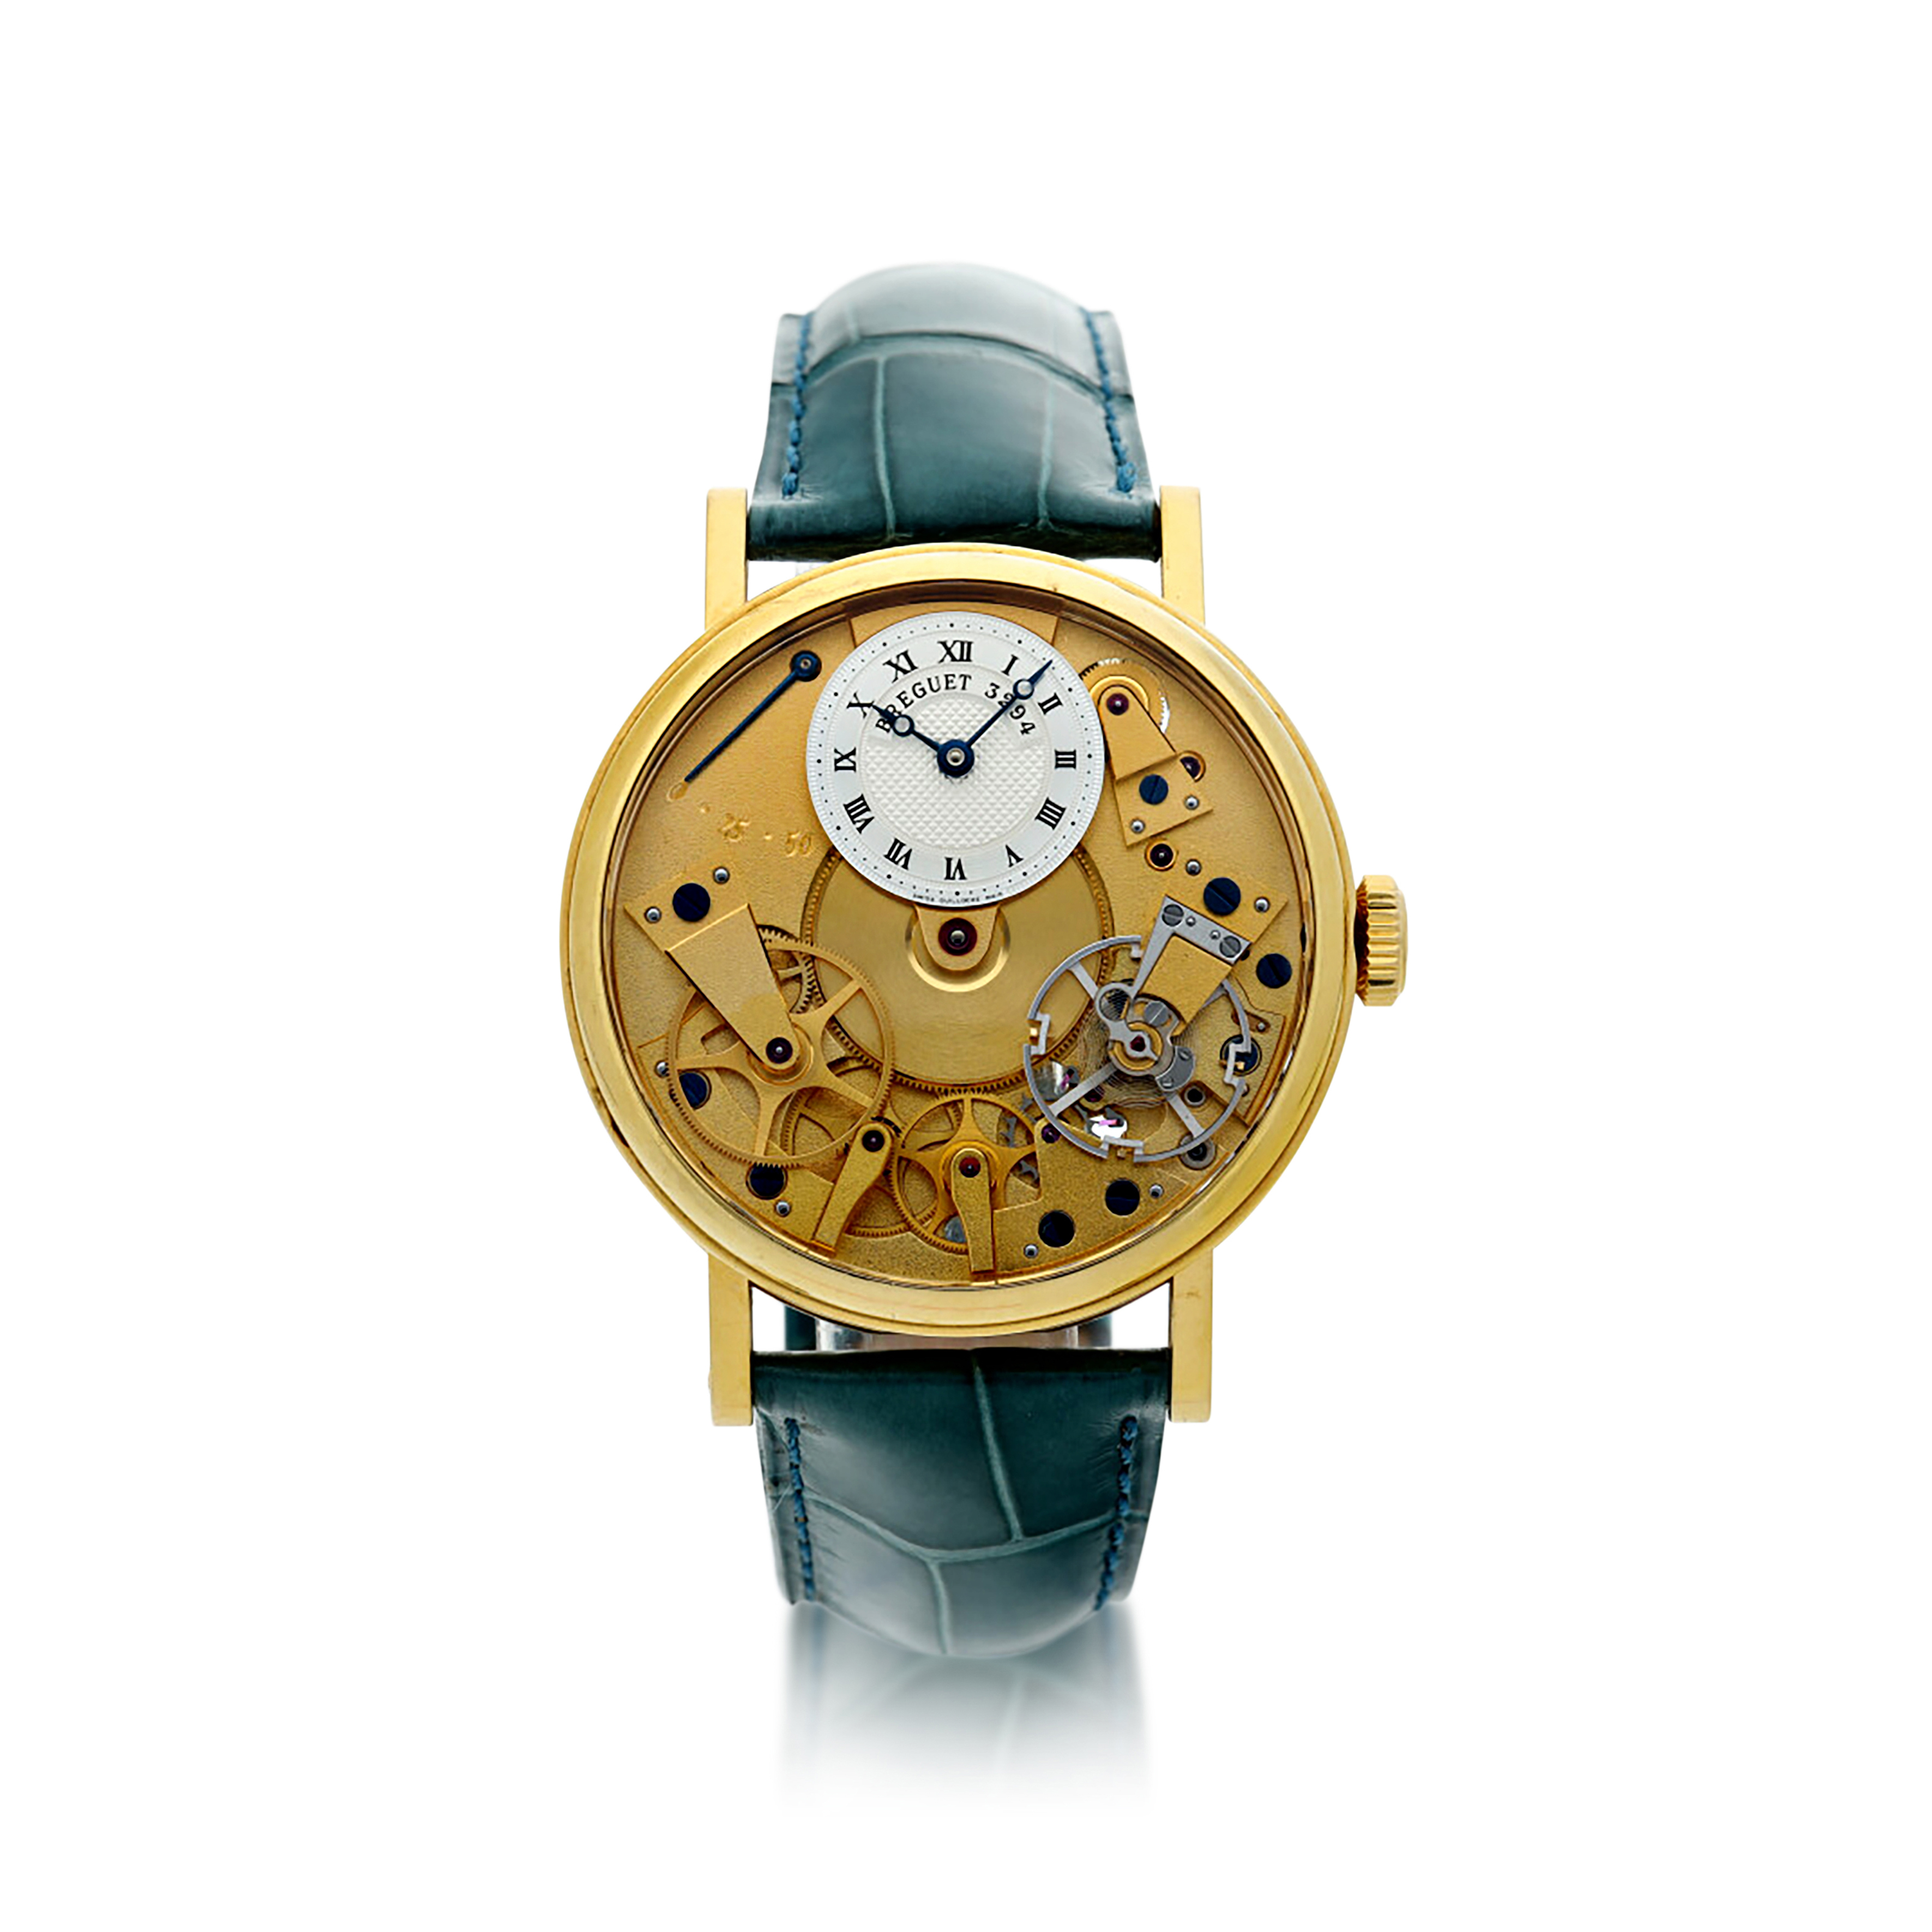 View full screen - View 1 of Lot 88. REFERENCE 7027 LA TRADITION A YELLOW GOLD SEMI-SKELETONIZED WRISTWATCH WITH POWER RESERVE INDICATION, CIRCA 2005.